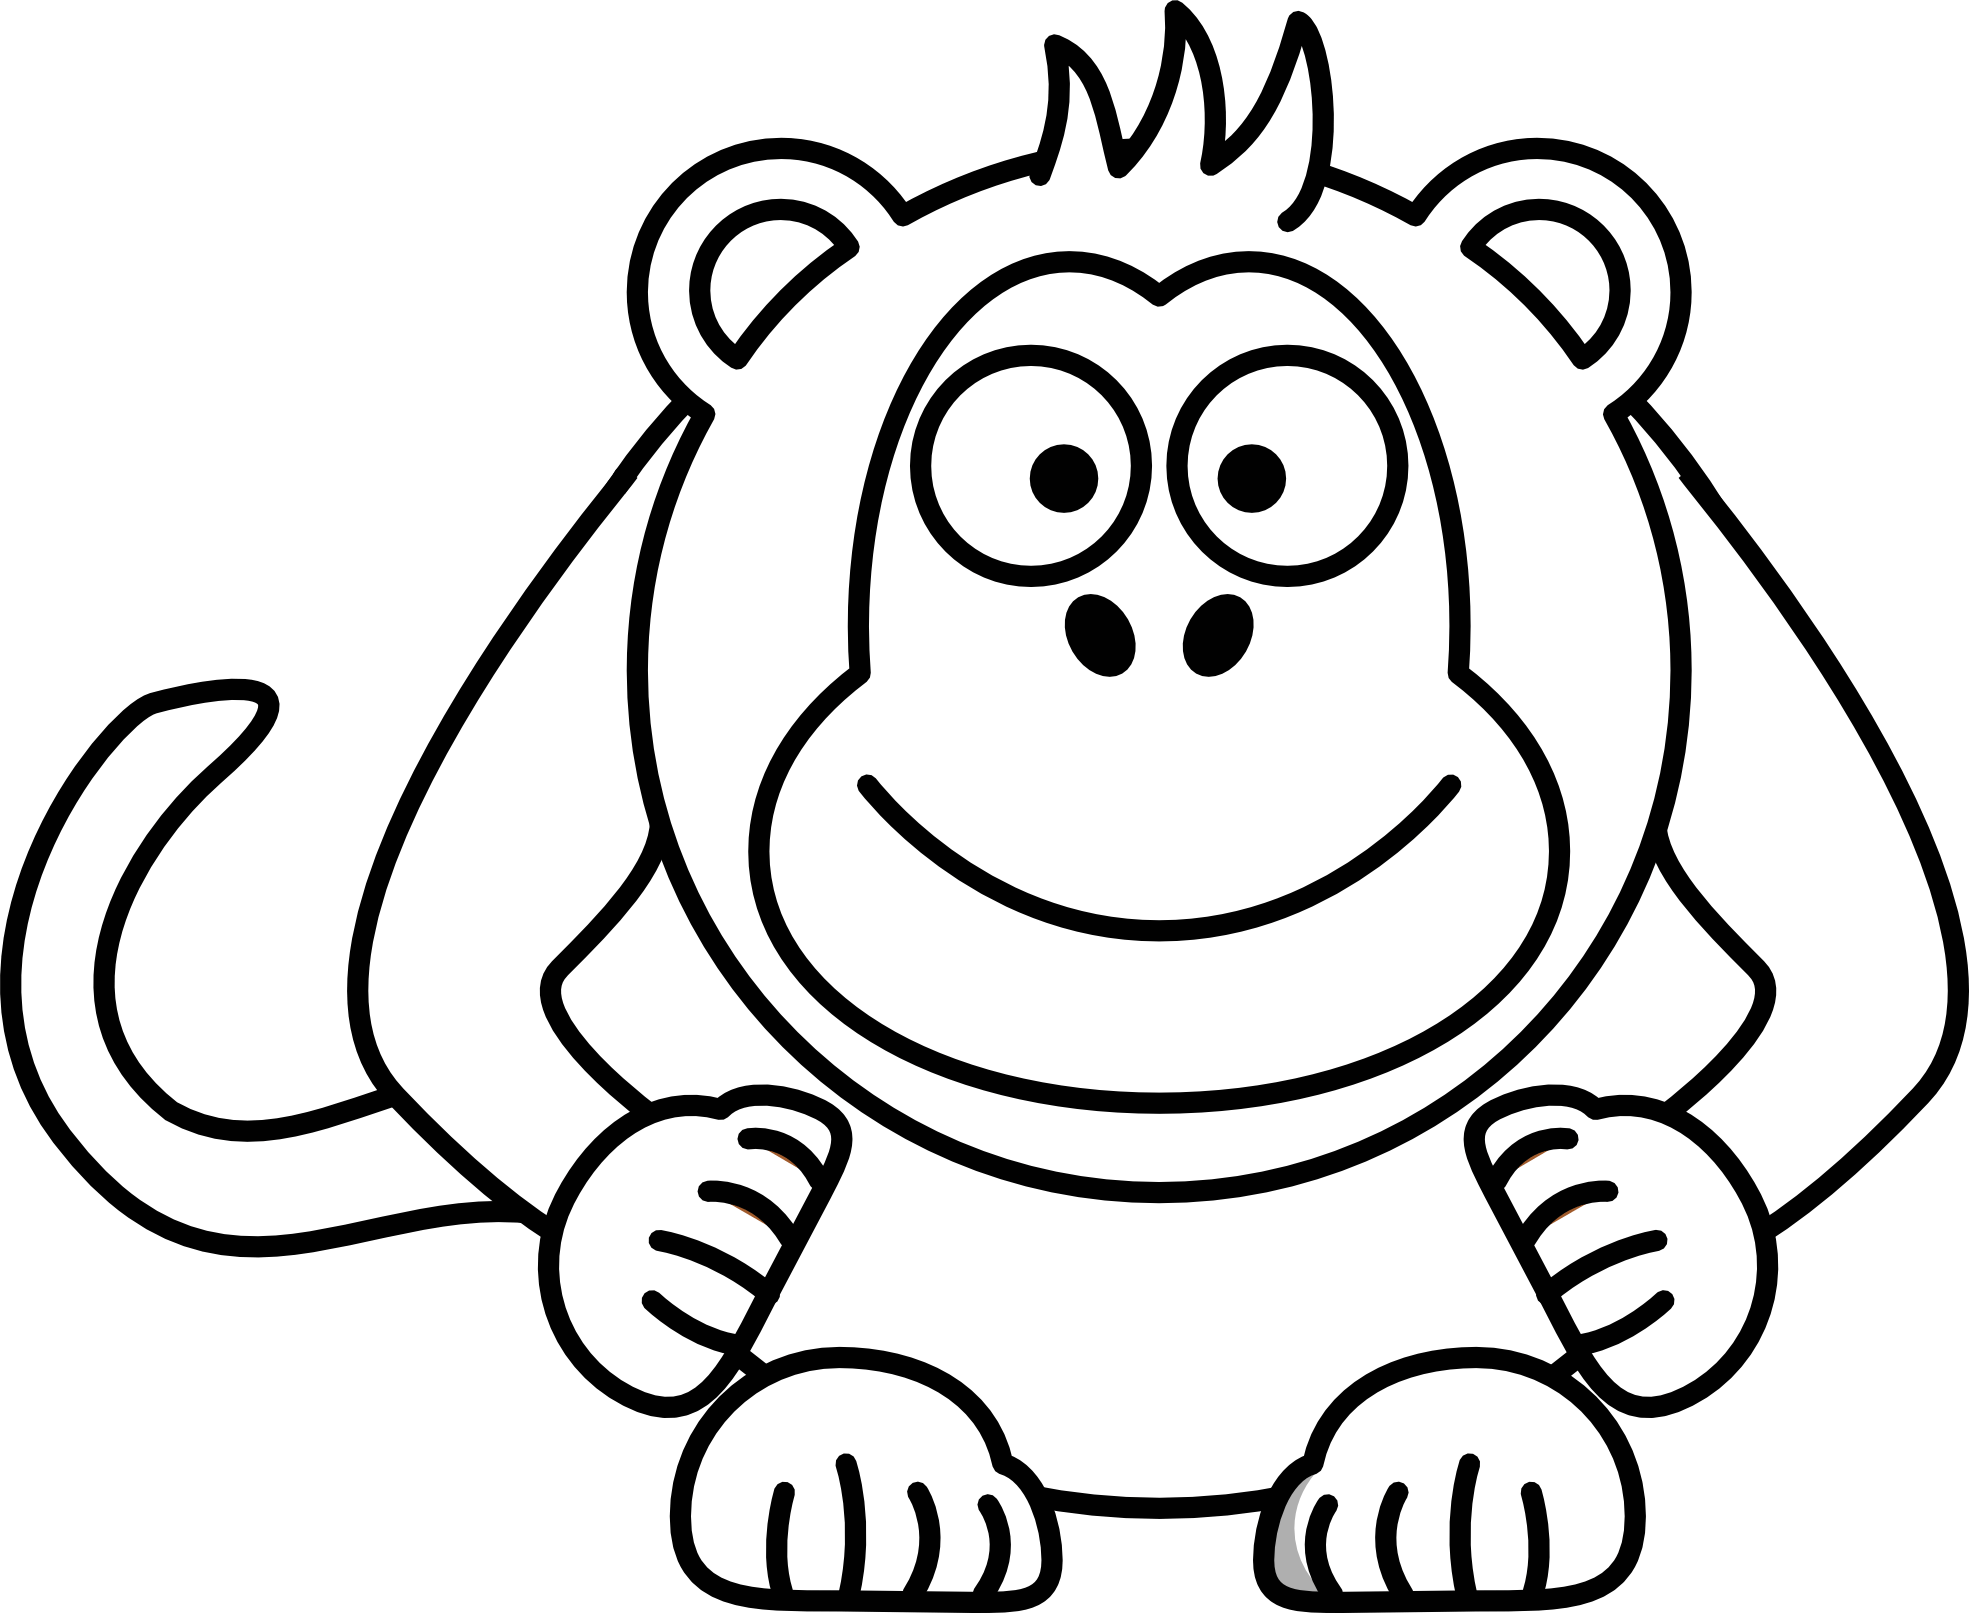 hight resolution of drawing monkeys cute of a monkey graphic transparent download